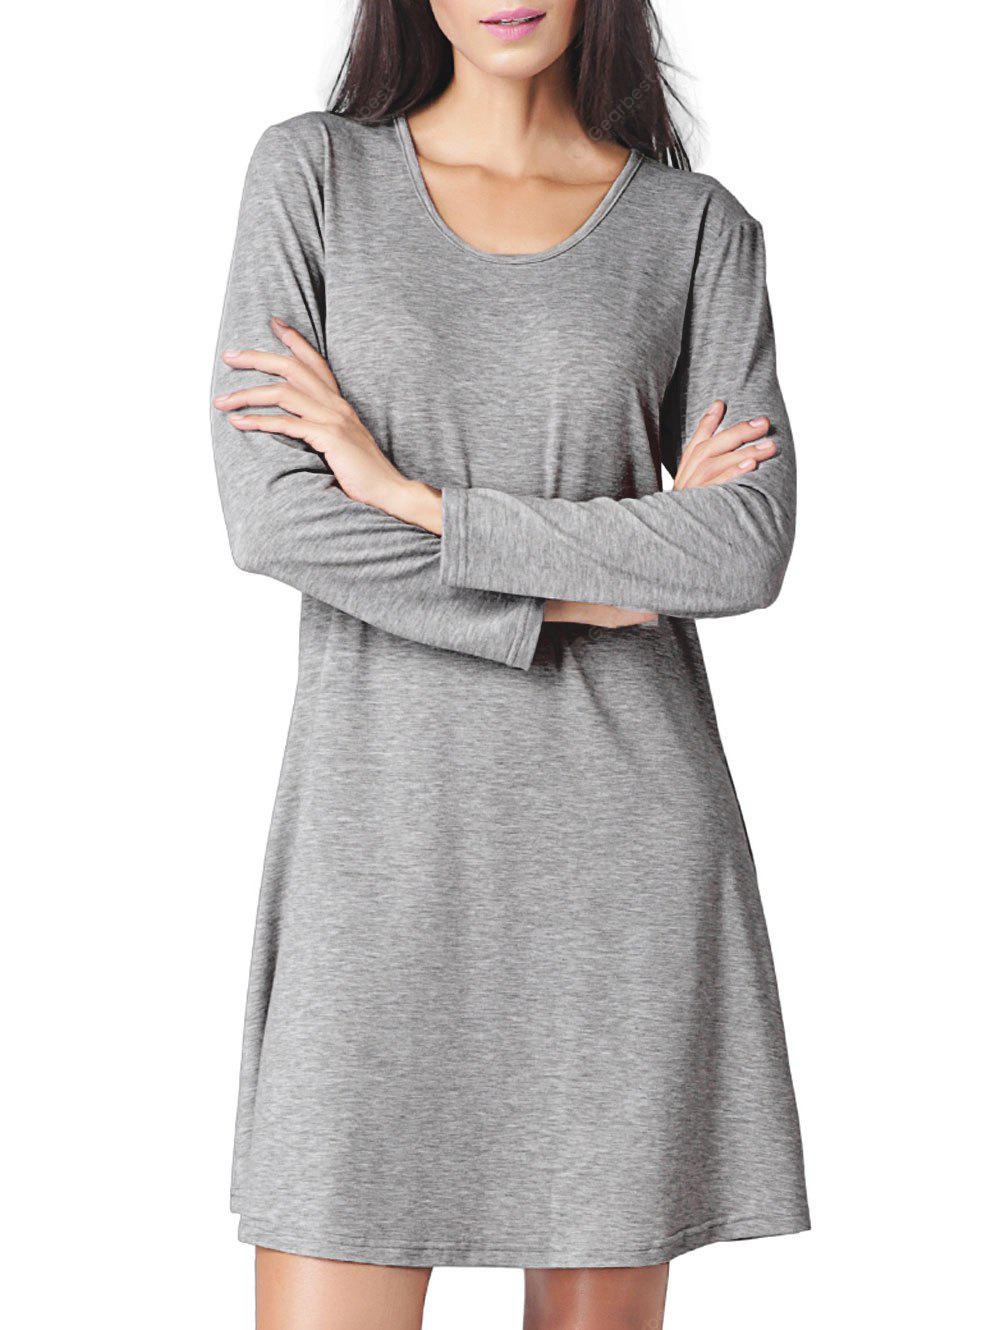 Cut Out Long Sleeve Mini T-shirt Dress